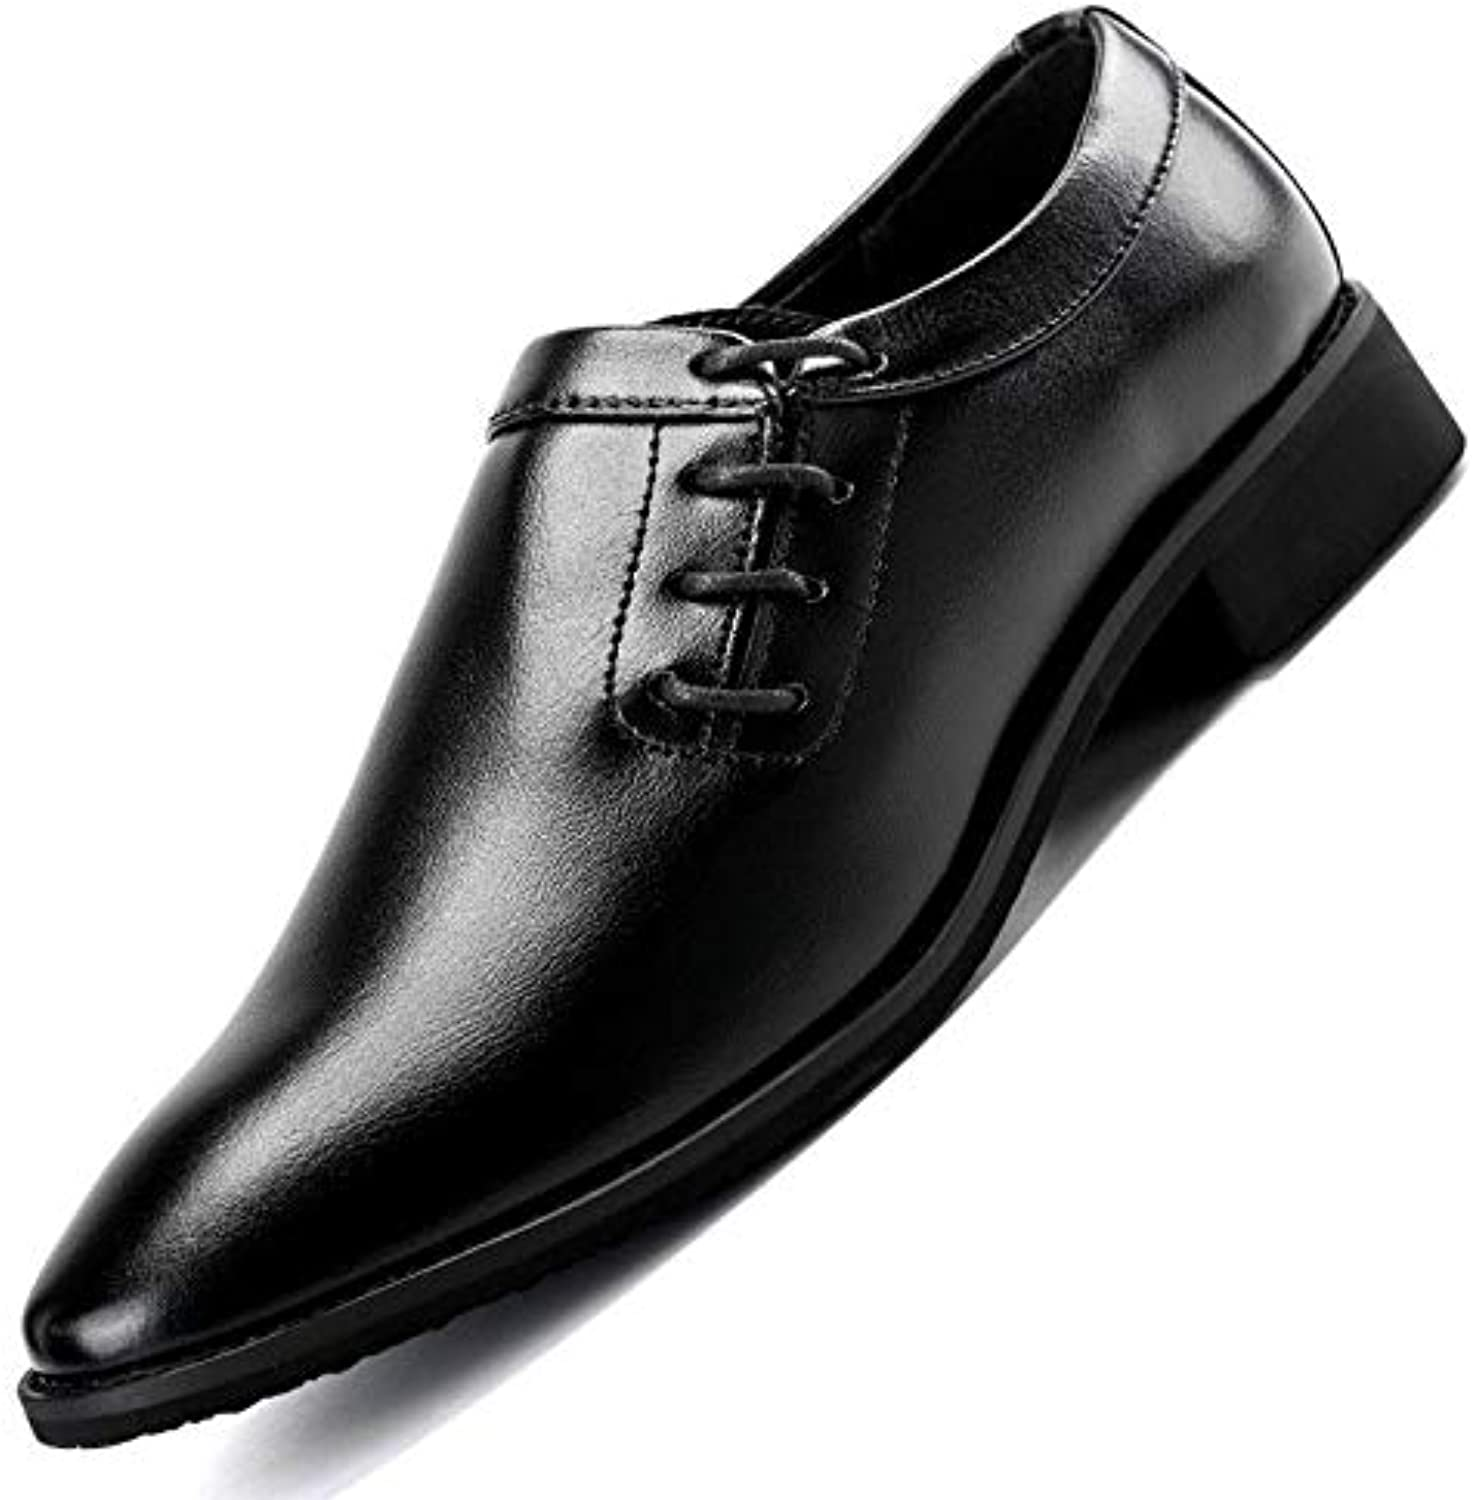 LHLWDGG.K Men'S shoes Casual Pointed Bridal shoes Men'S Leather Oxford